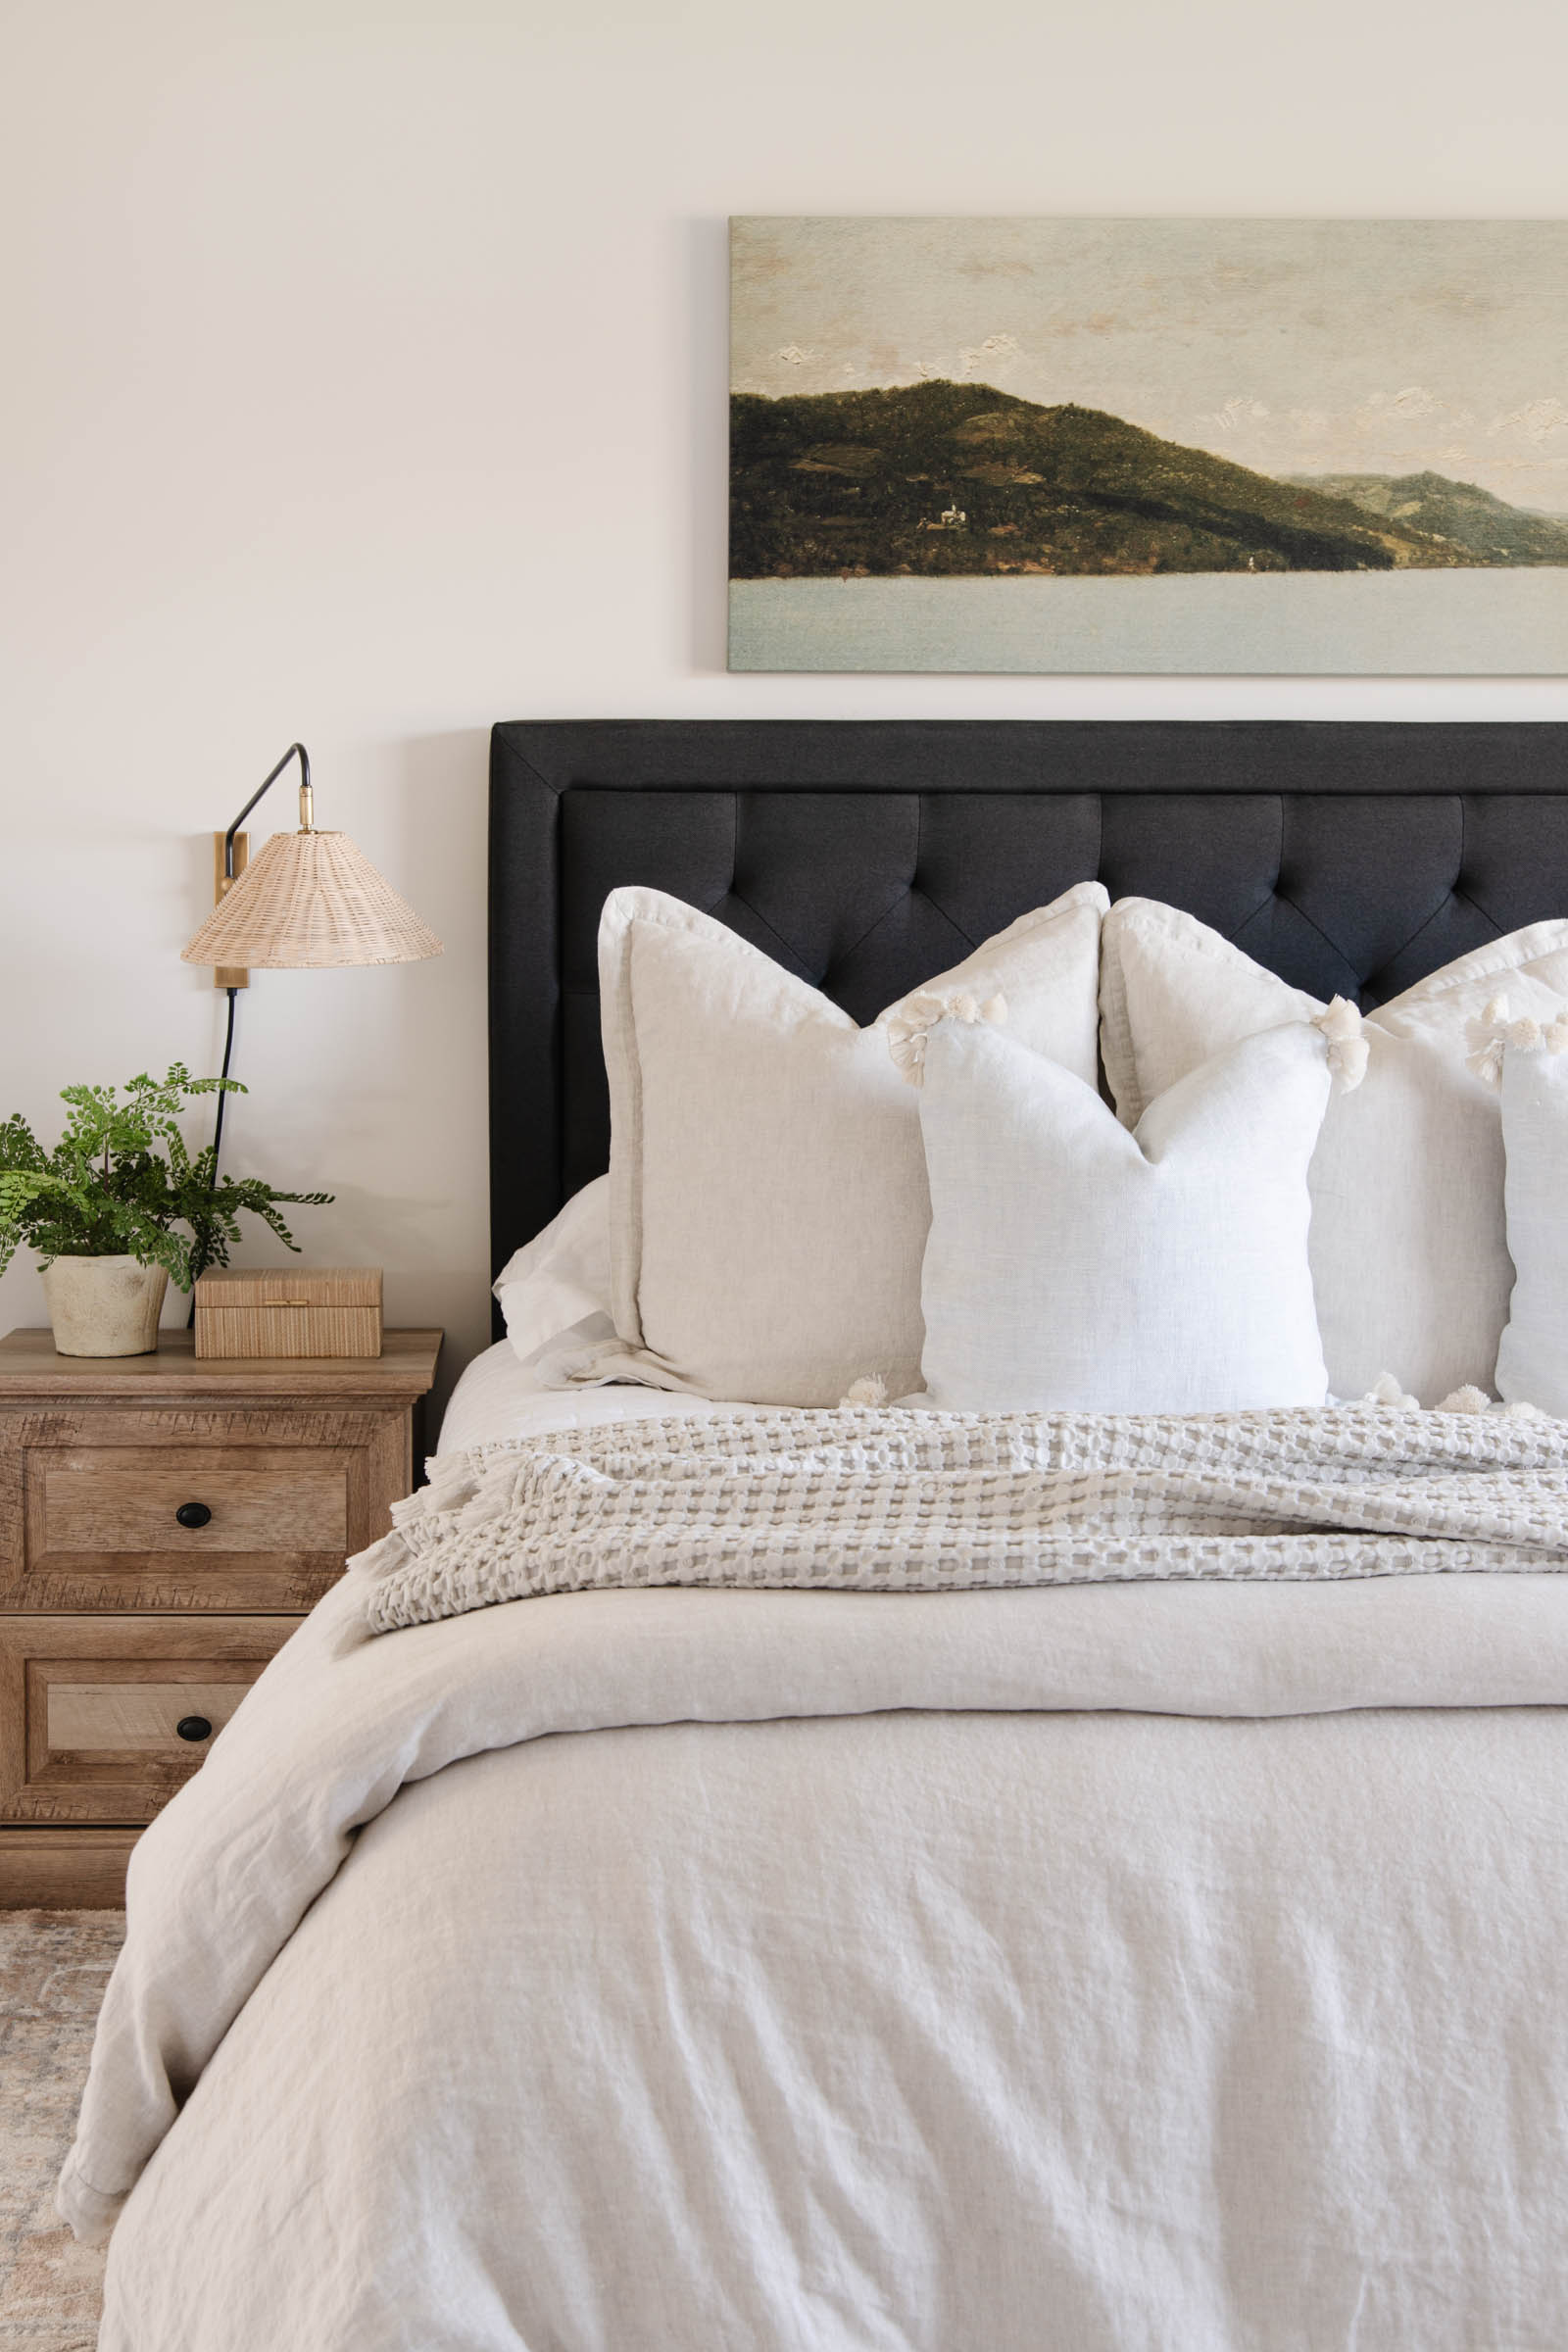 bedroom with beige linen duvet cover, long landscape painting, Flynn single wall sconce with wicker shade